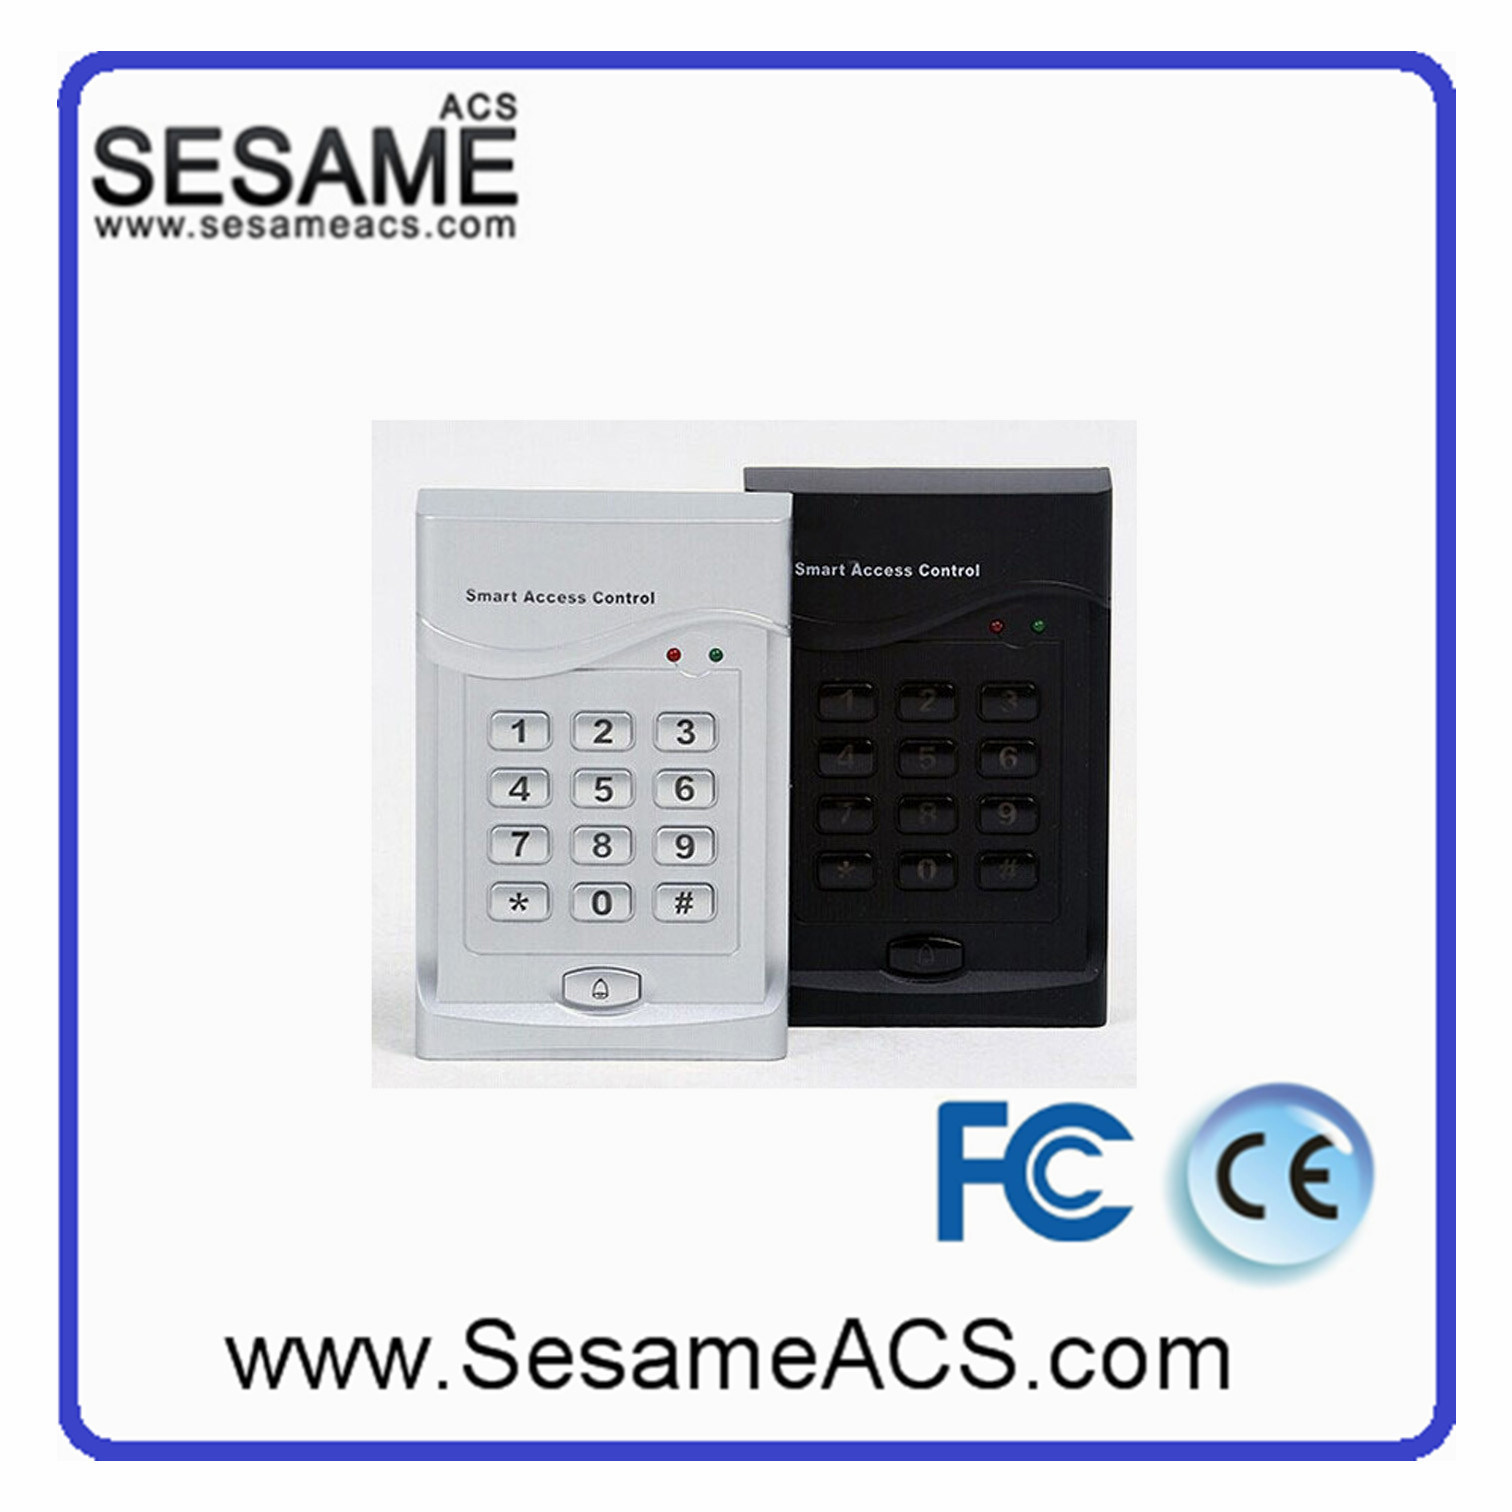 RFID Stand Alone Keypad Card Reader Door Access Control System with MIFARE Reader (SE60C-WG)